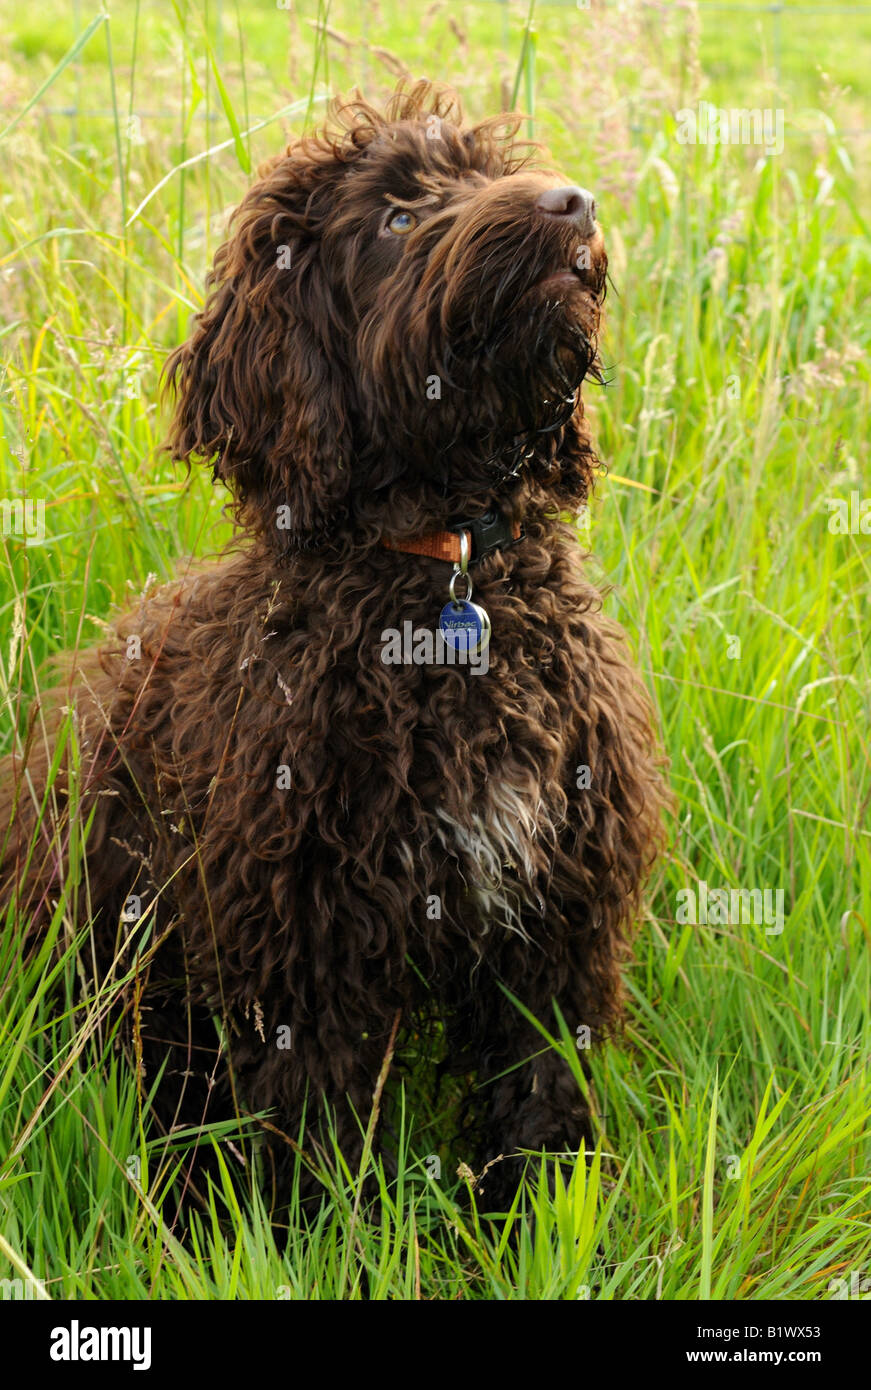 chocolate cookapoo puppy sat in long grass by lake - Stock Image